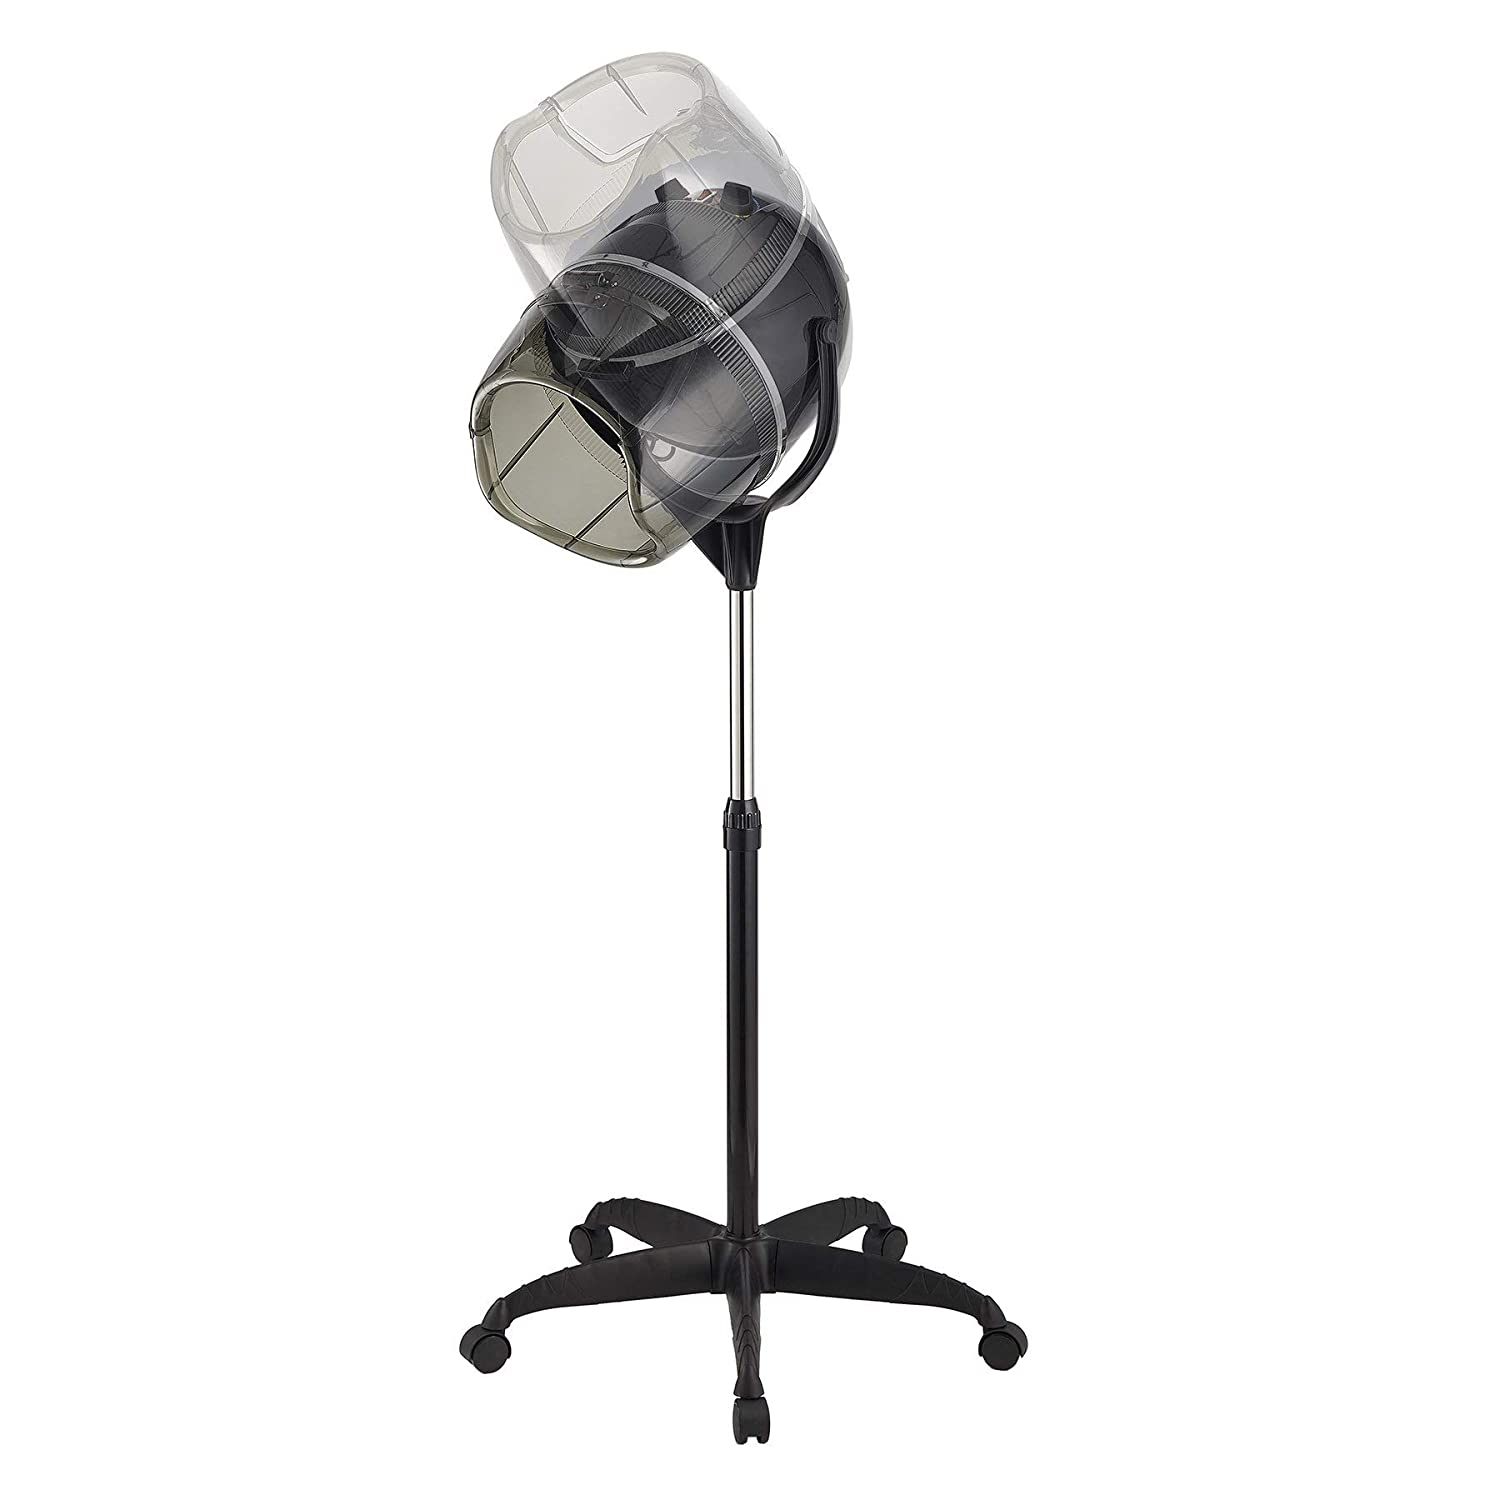 Professional Adjustable Hooded Stand-Up 110V Hair Bonnet Dryer with Timer Swivel Caster Rolling Base for Beauty Salon or Home Use